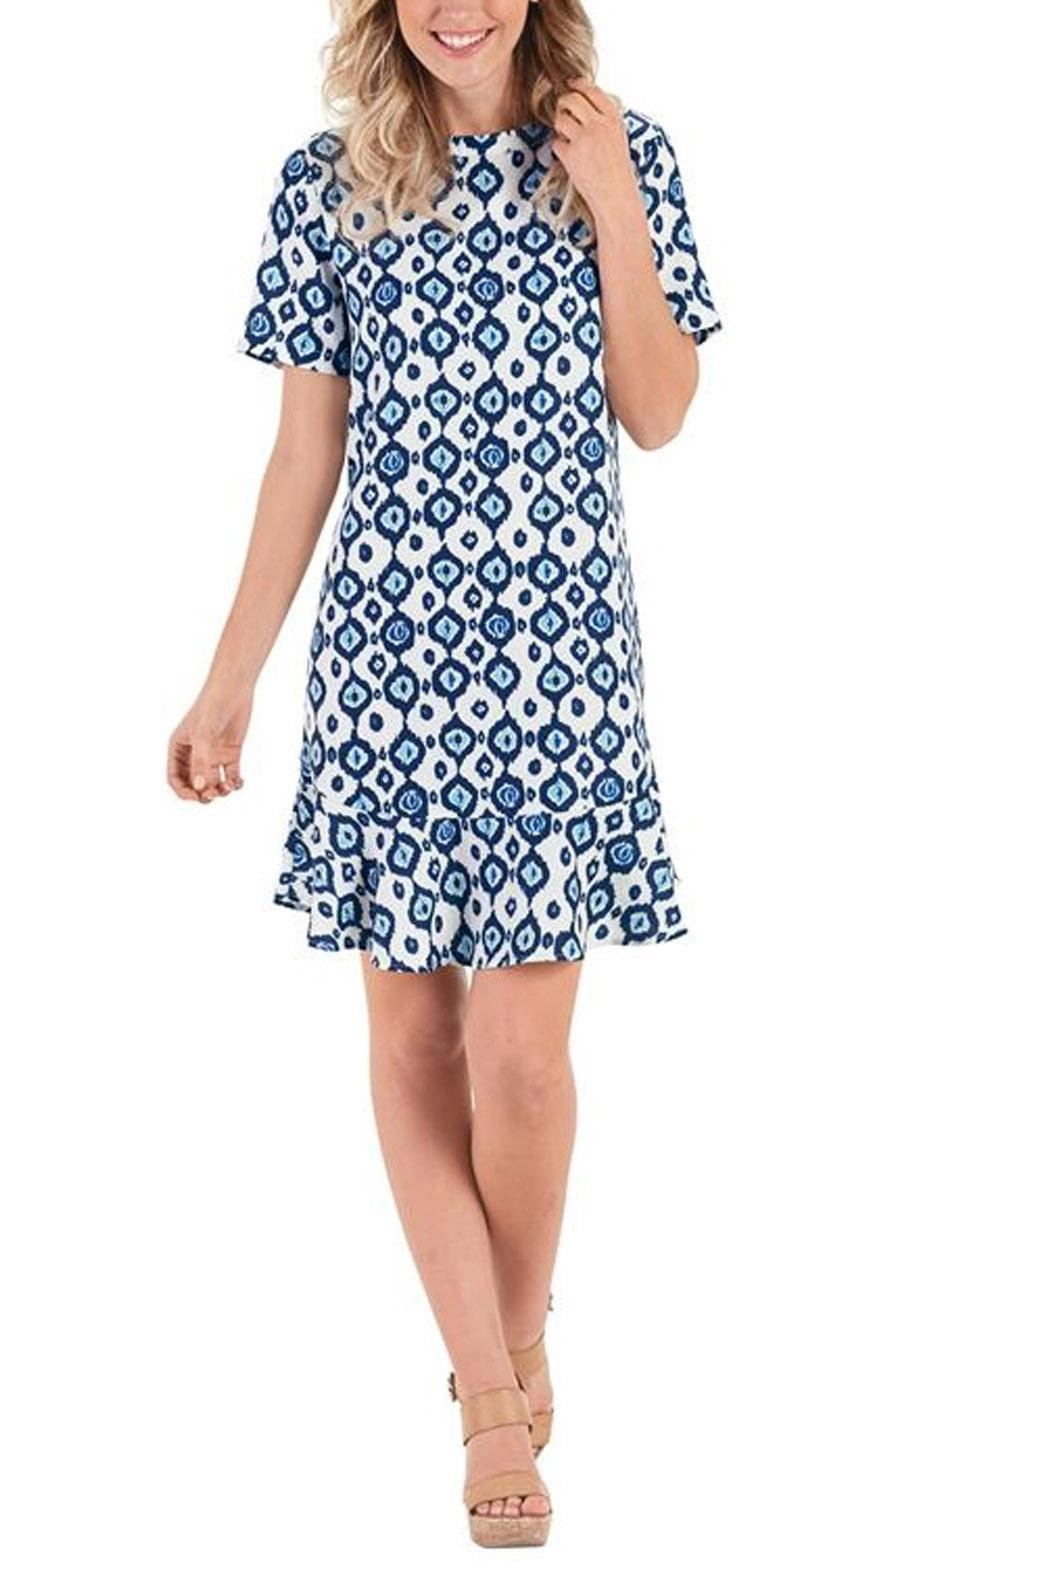 Mud Pie Navy Ikat Dress - Front Cropped Image